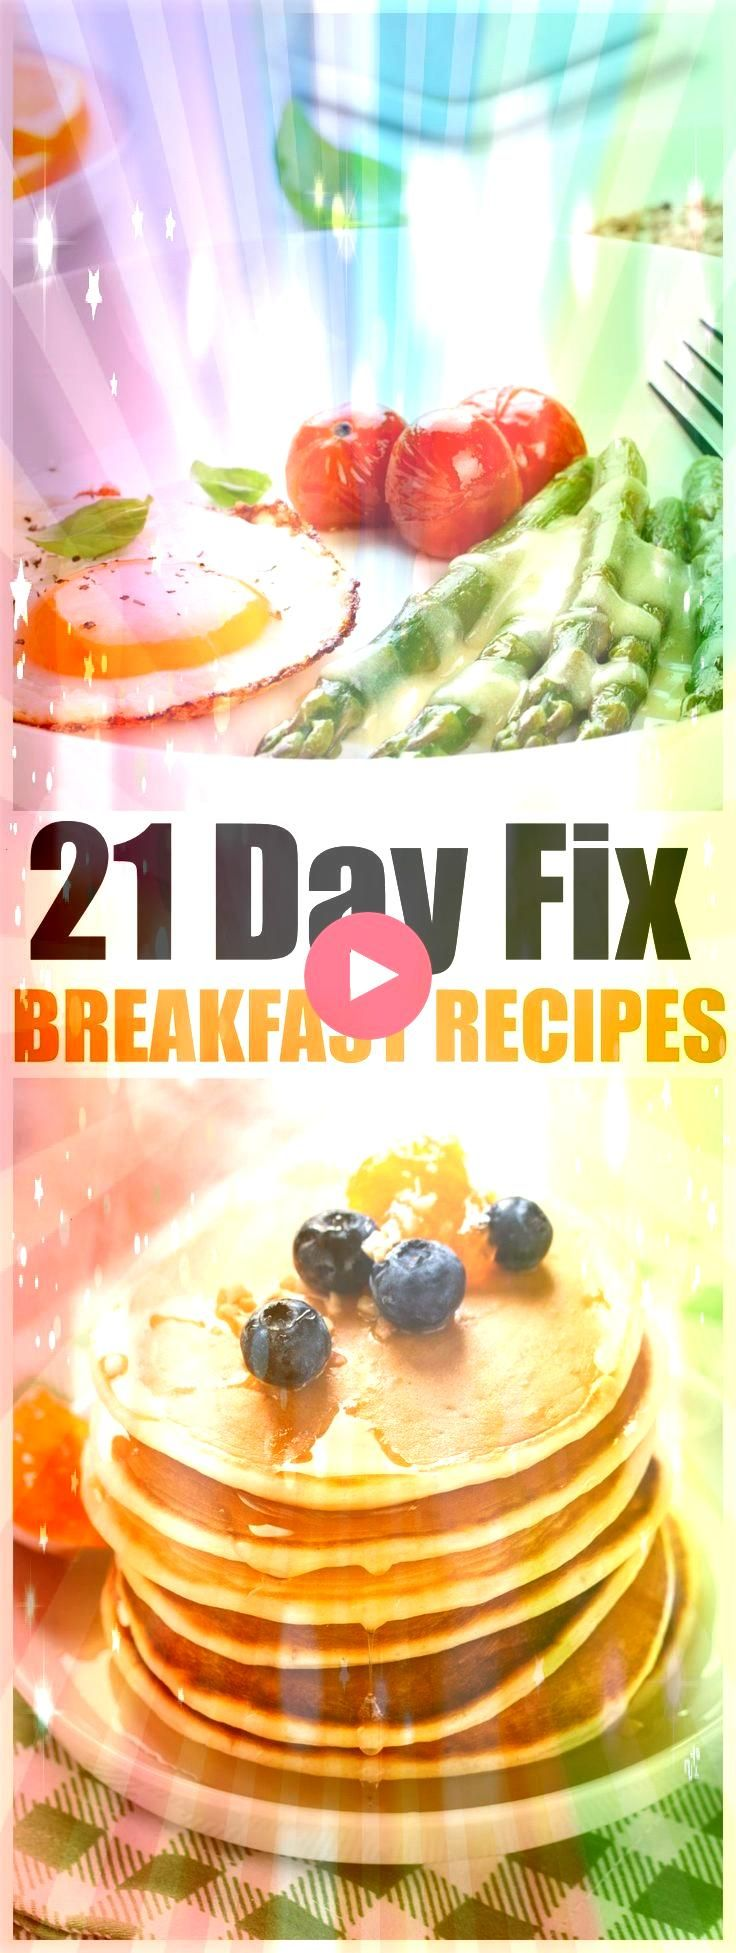 Day Fix Breakfast Recipes  21Day Fix Breakfast Recipes Get a breakfast for Every work day of the month with these 20 21day fix recipes21 Day Fix Breakfast Recipes  21Day...